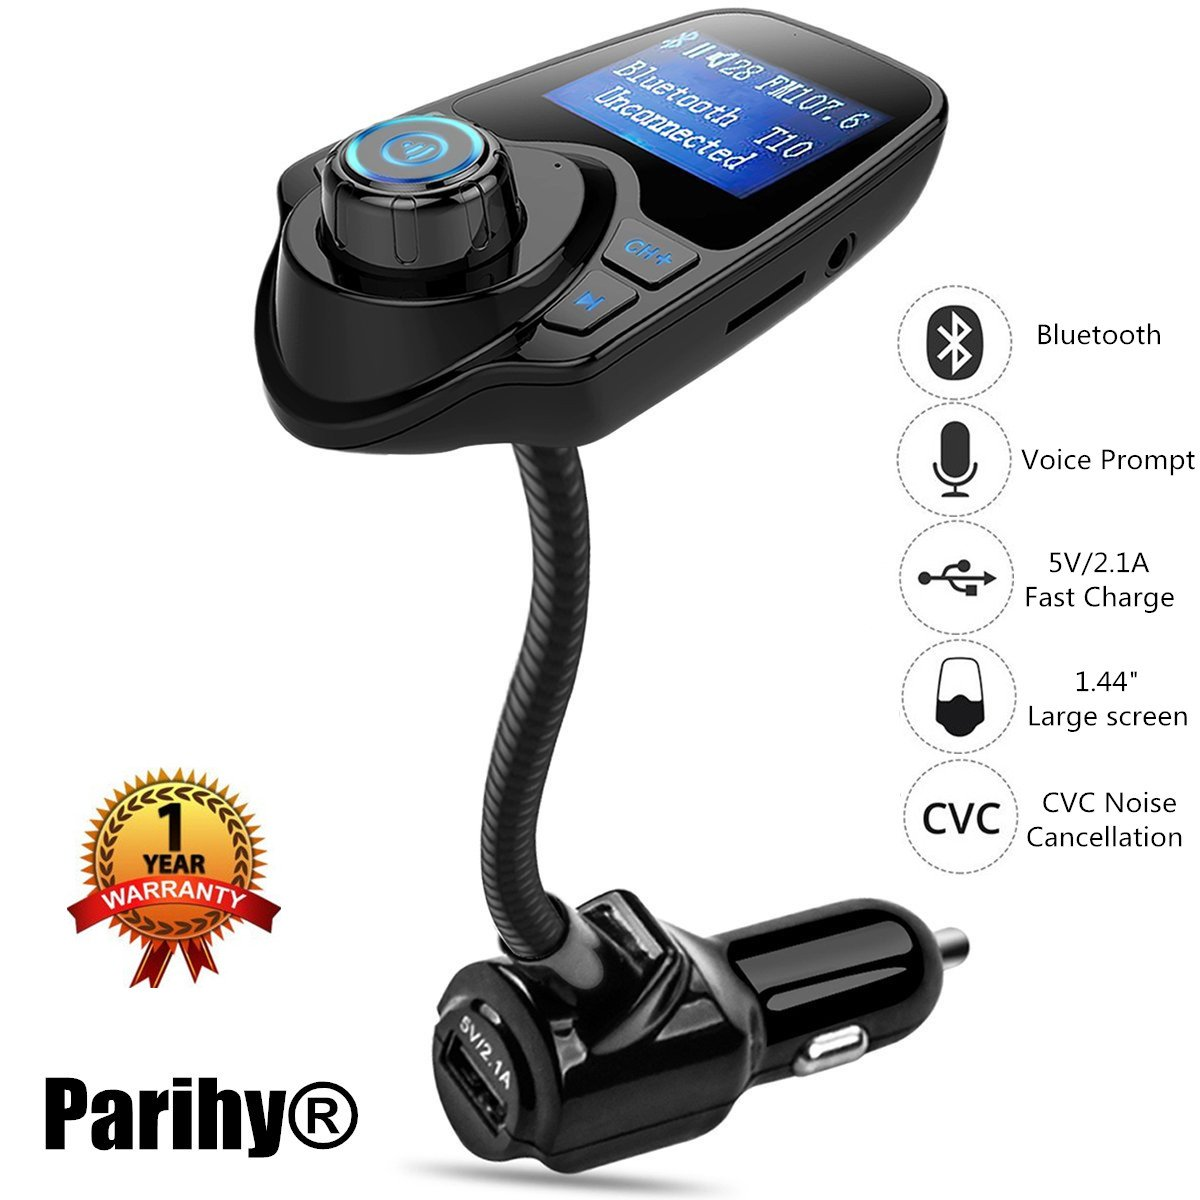 FM Transmitter, Parihy® Bluetooth Car Radio Adapter for Music W USB Charger Kit Support Hands Free Calling, TF/SD Card Mp3 Player for iPhone, Samsung Cellphone & Pad Any Bluetooth Devices (B2)